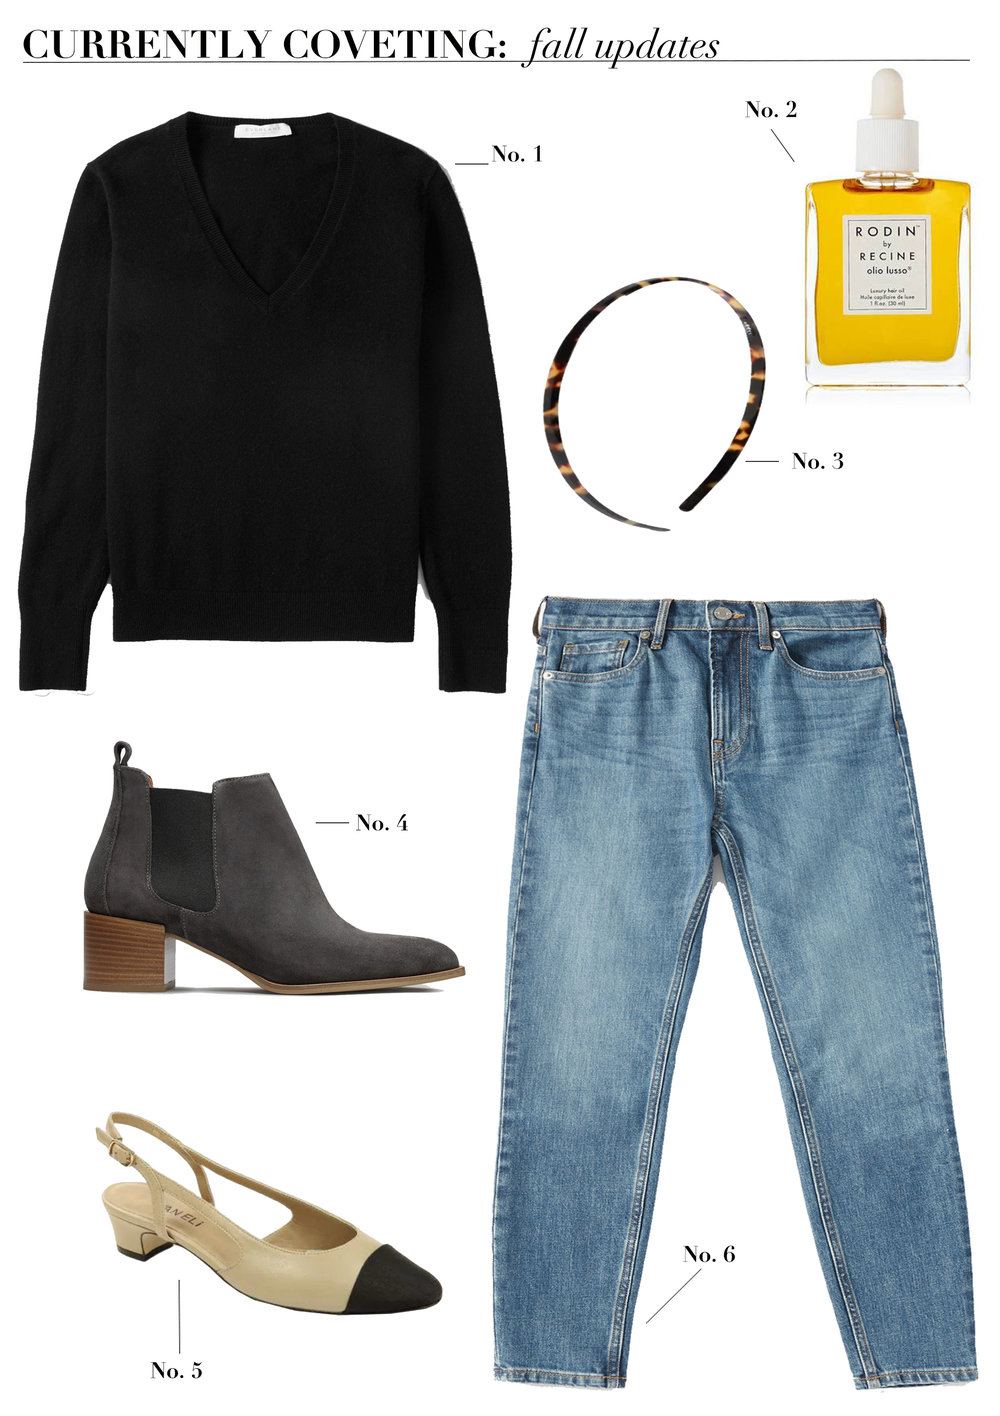 currently_coveting_fall_fashion_everlane_Cashmere_vneck_everlane_jeans_everlane_mid_rise_jeans_everlane_suede_ankle_boots_jcrew_tortoise_shell_headband_hair_oil_vaneli_aliza_pumps_vaneli_pumps_chanel_slingback_dupes_chanel_dupes.jpg